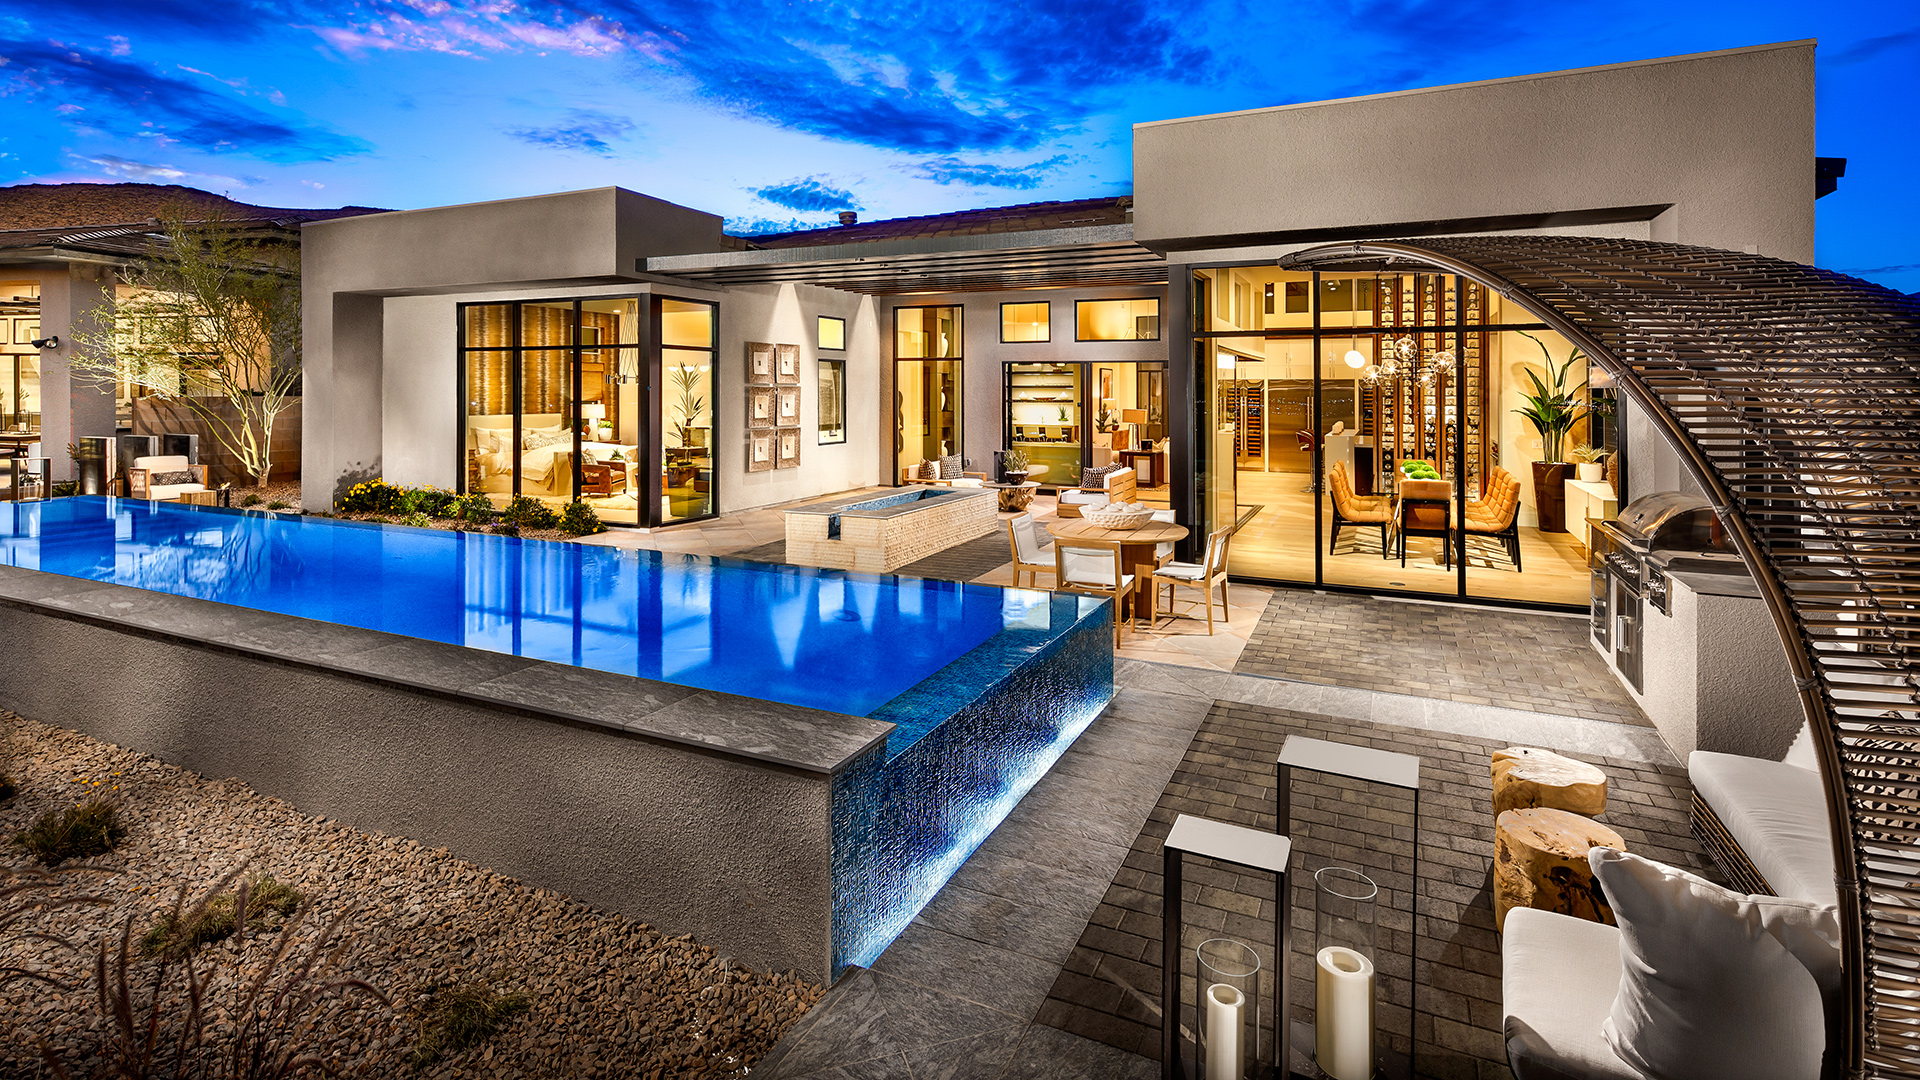 new luxury homes for sale in las vegas nv mesa ridge overlook collection luxury homes for sale in las vegas nv